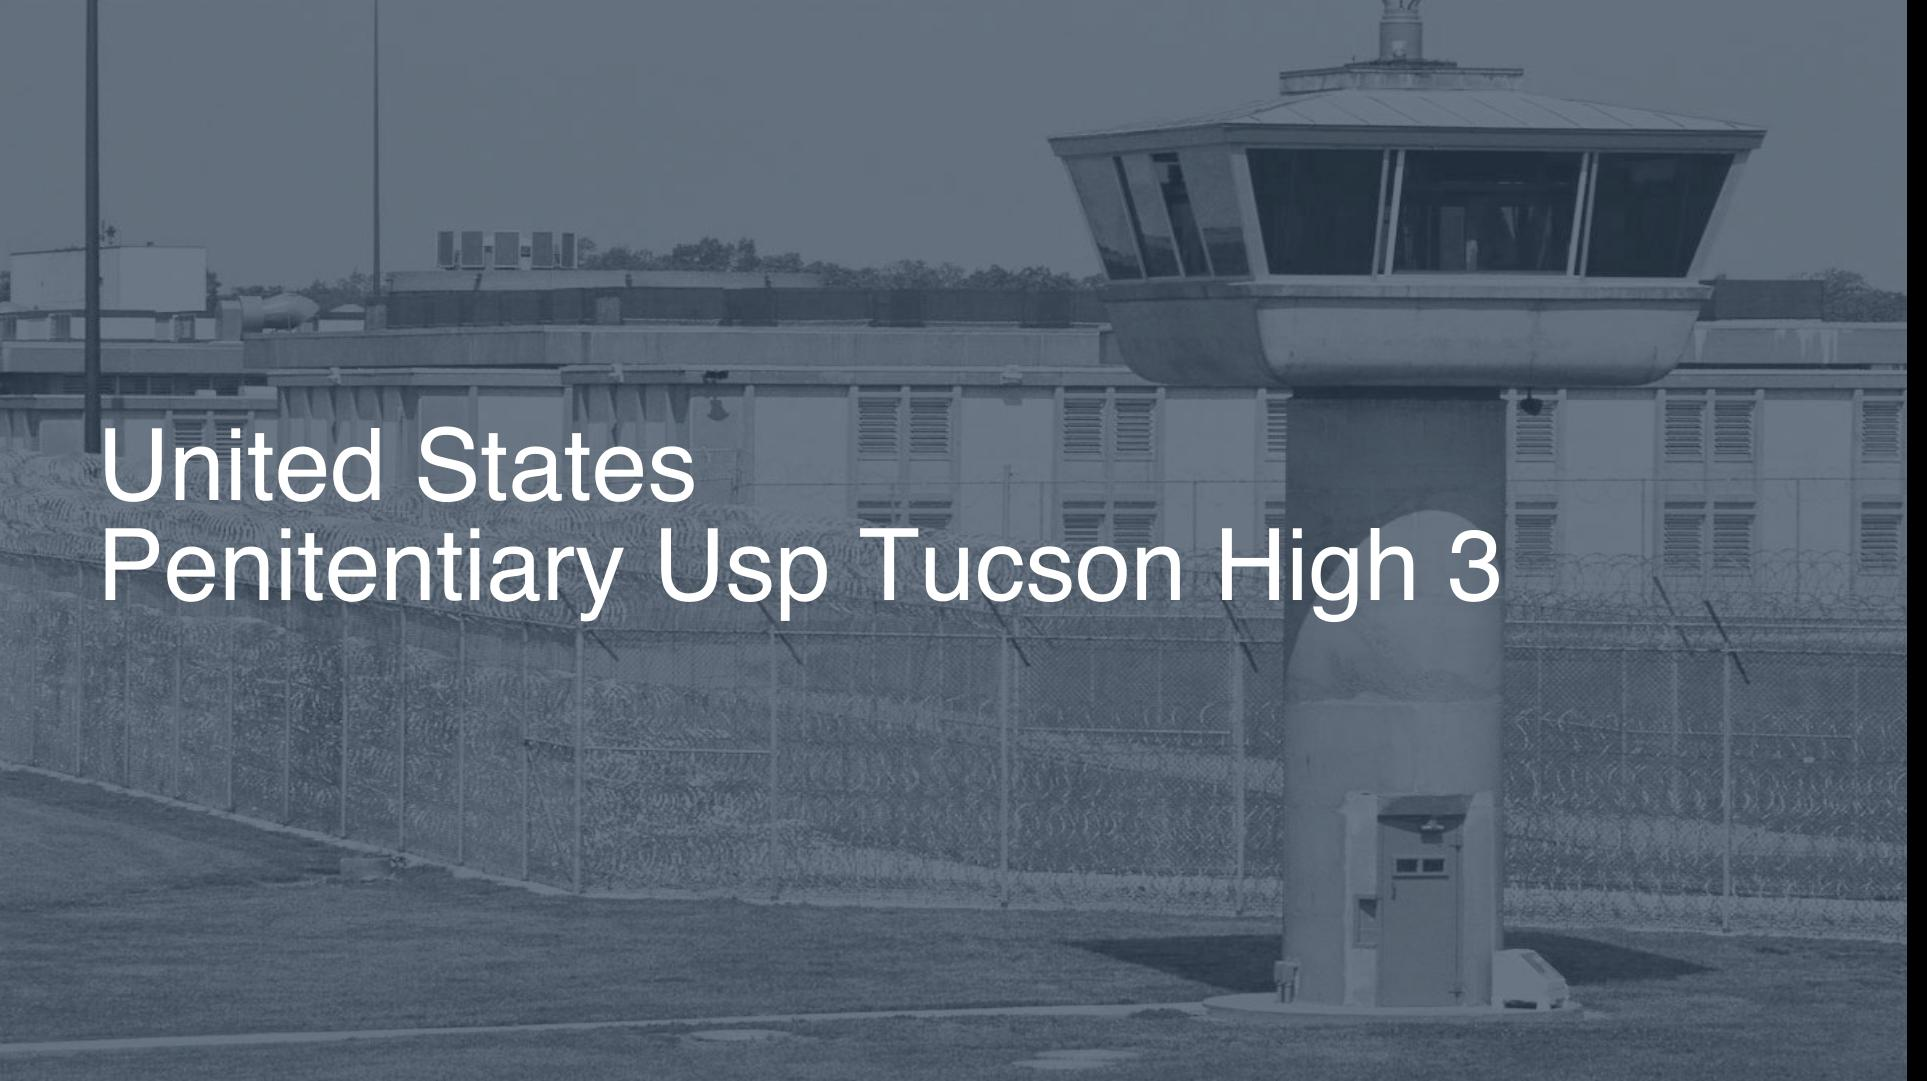 United States Penitentiary (USP) - Tucson High correctional facility picture